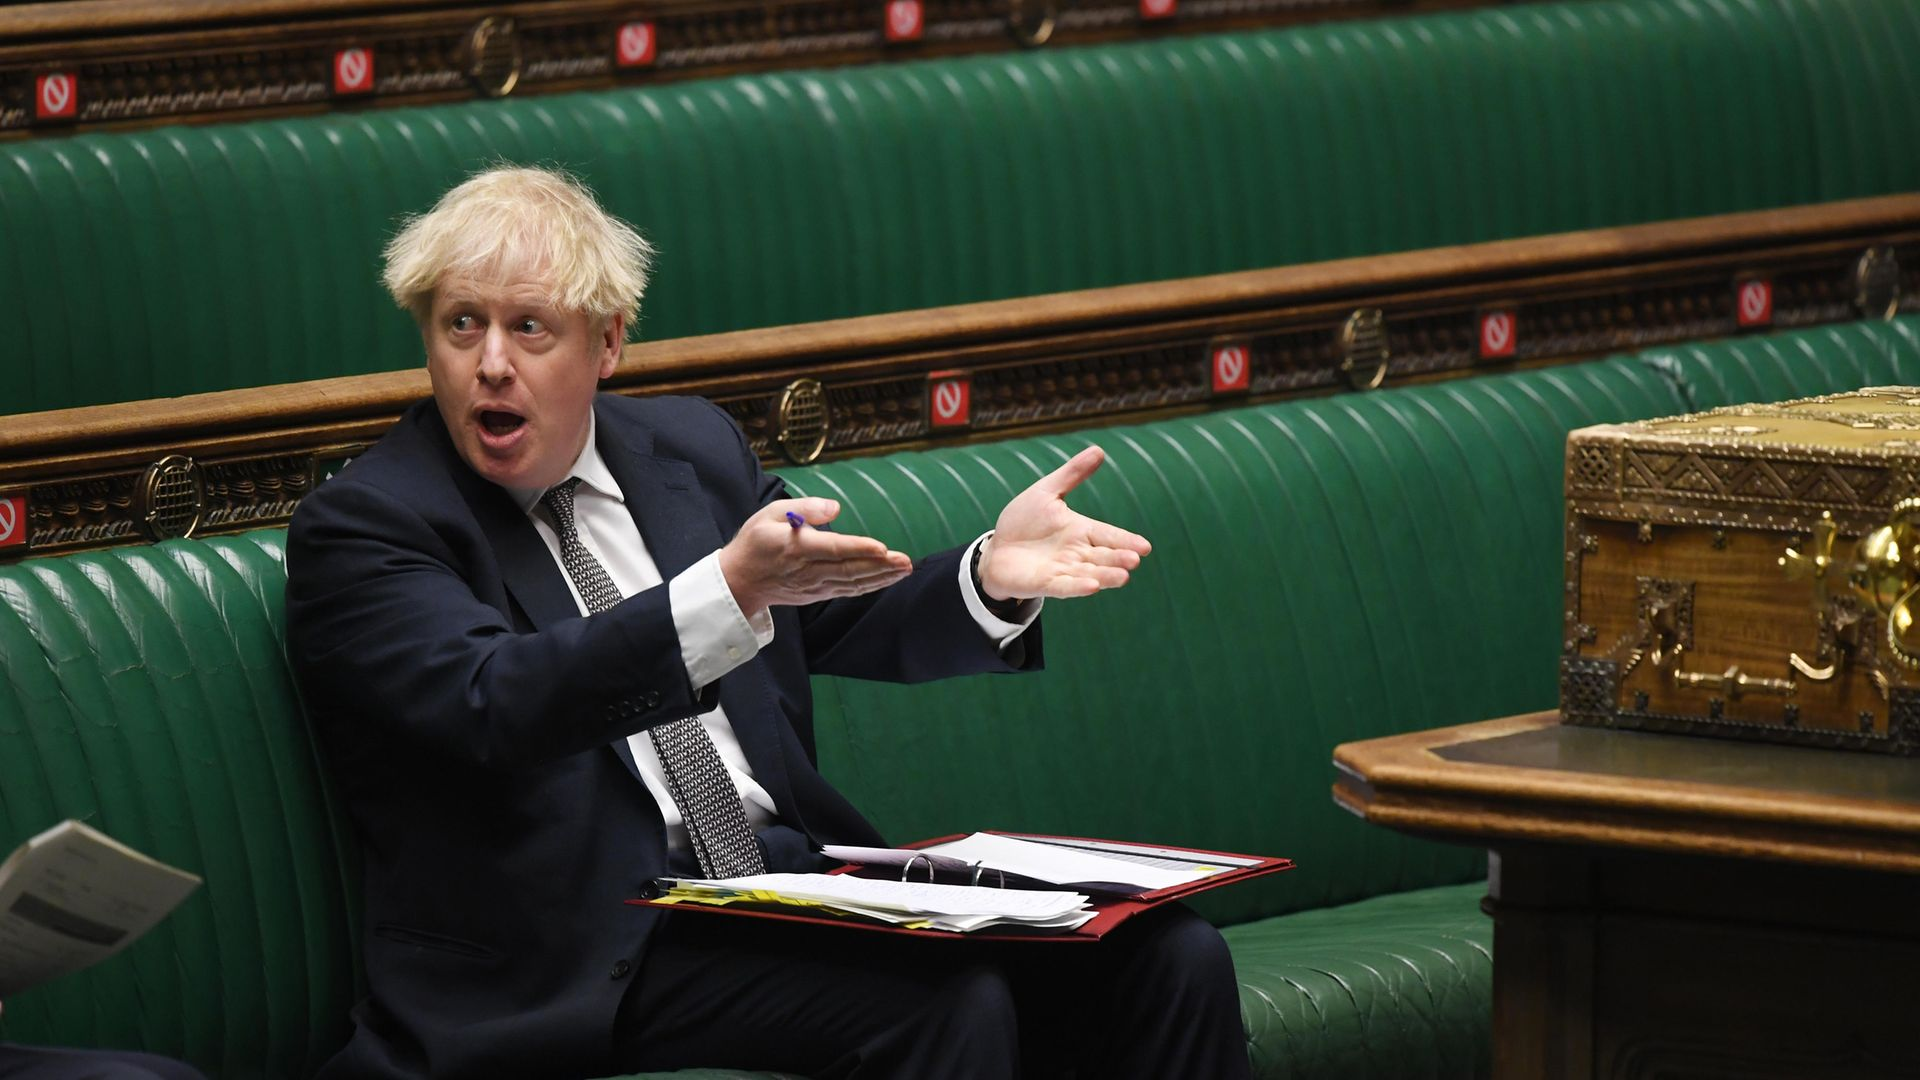 Boris Johnson in the House of Commons - Credit: Jessica Taylor/House of Commons